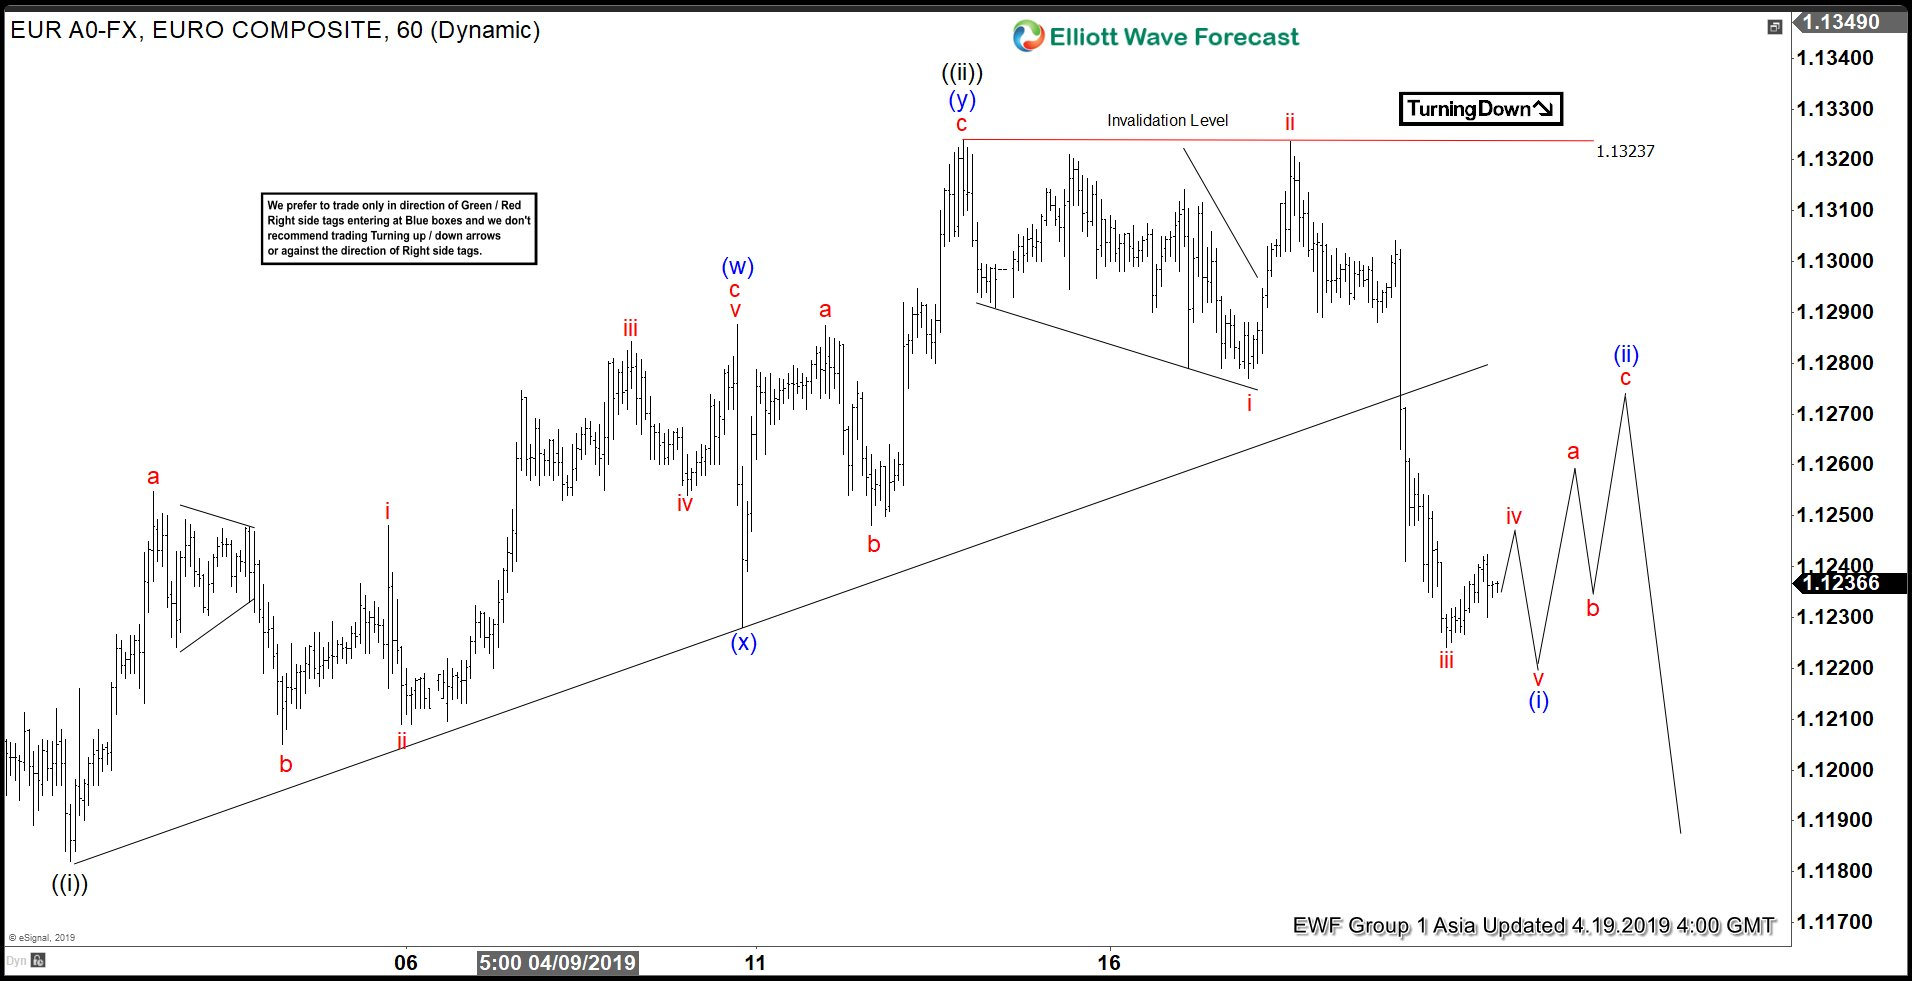 Elliott Wave View: EURUSD Remains Bearish in Shorter Cycle